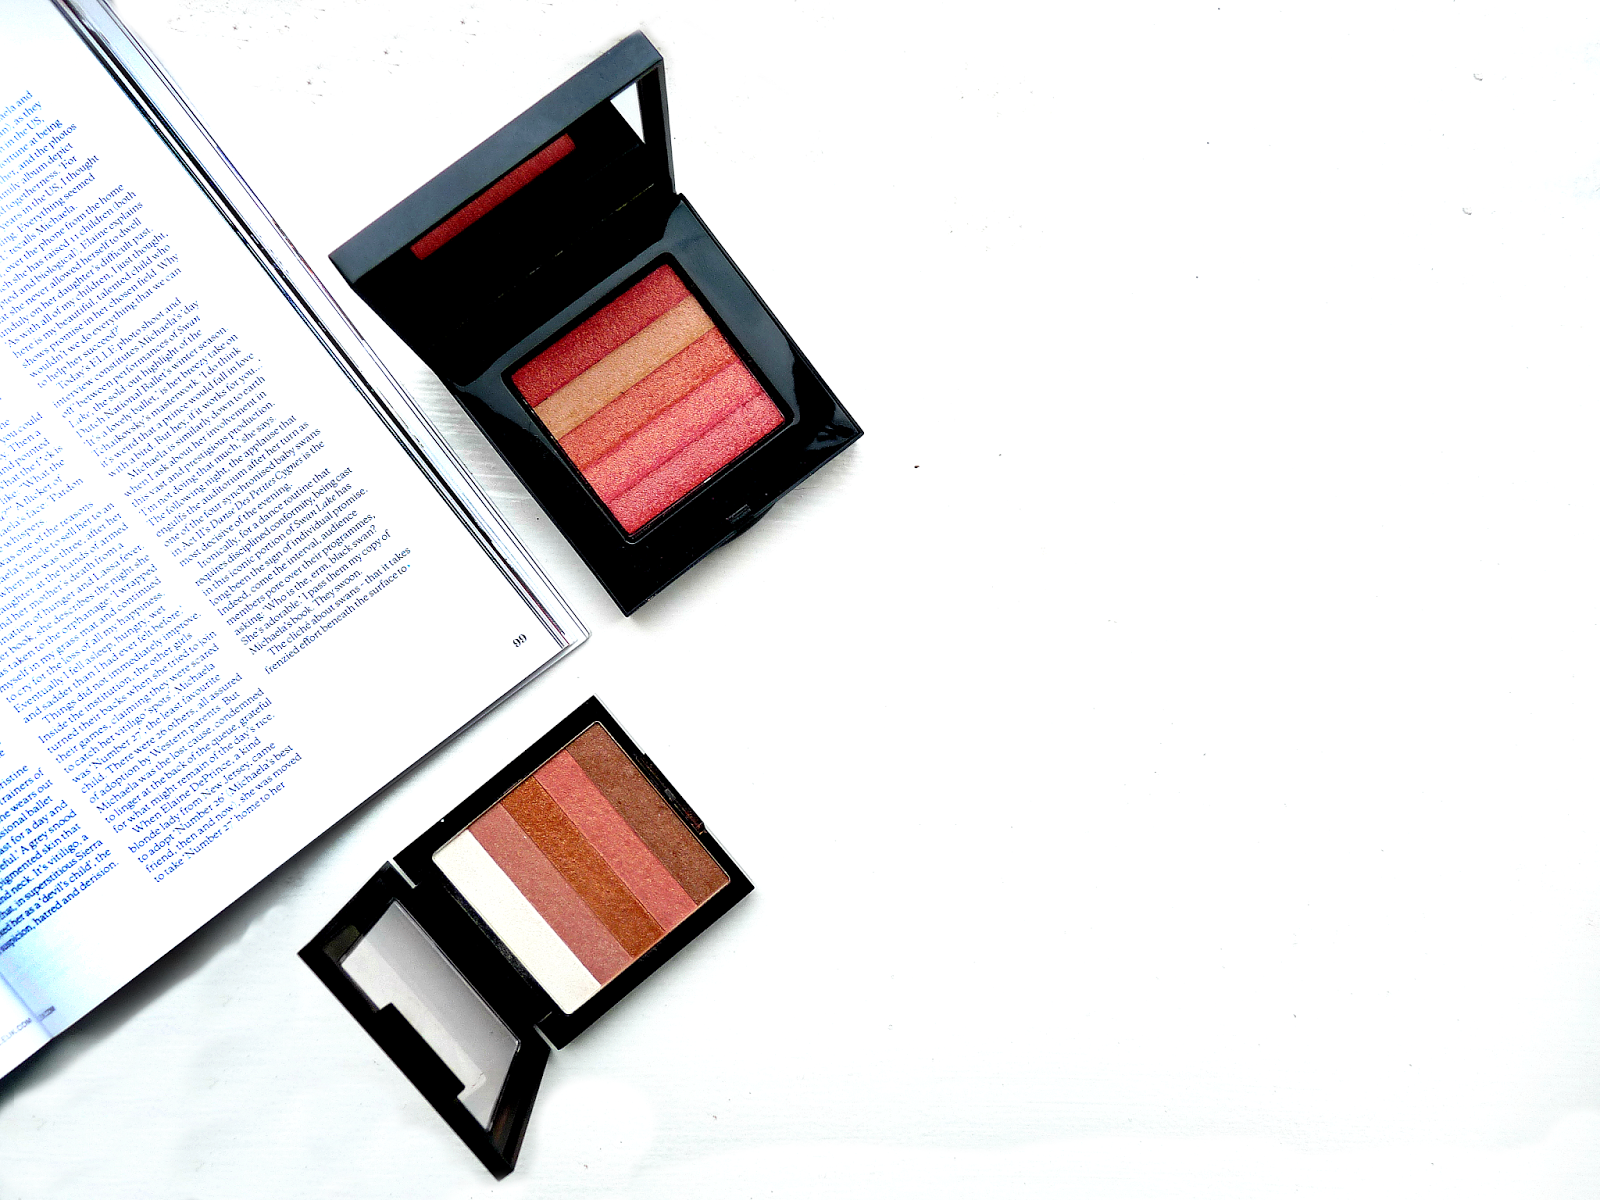 bobbi brown shimmer brick v vs revlon highlighting palette dupe splurge or save review comparison beauty makeup youwishyou